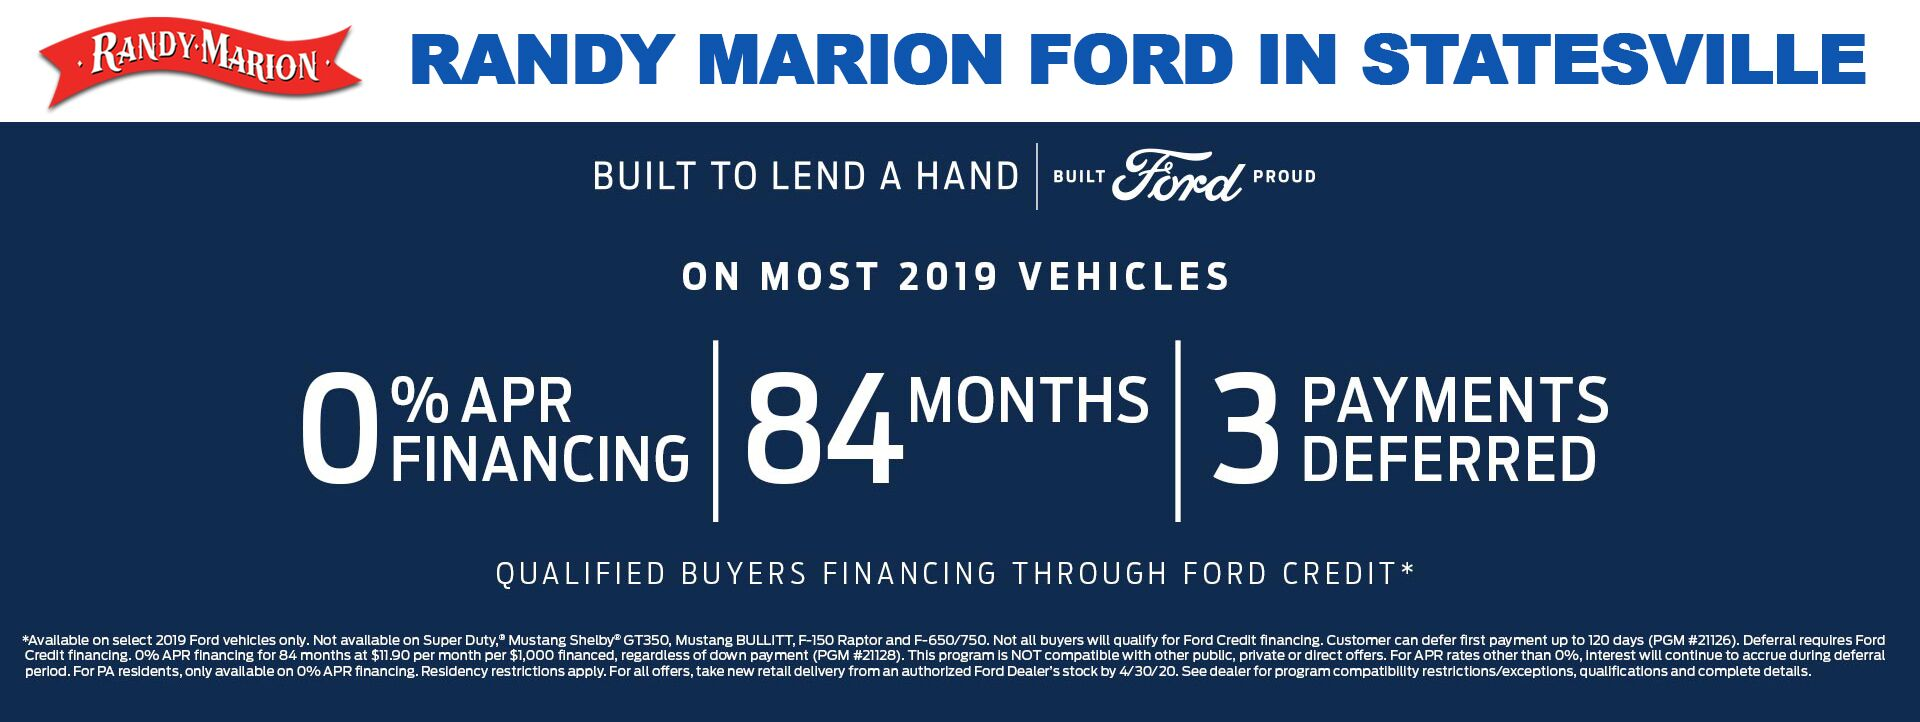 Randy Marion Ford - SHOP ONLINE